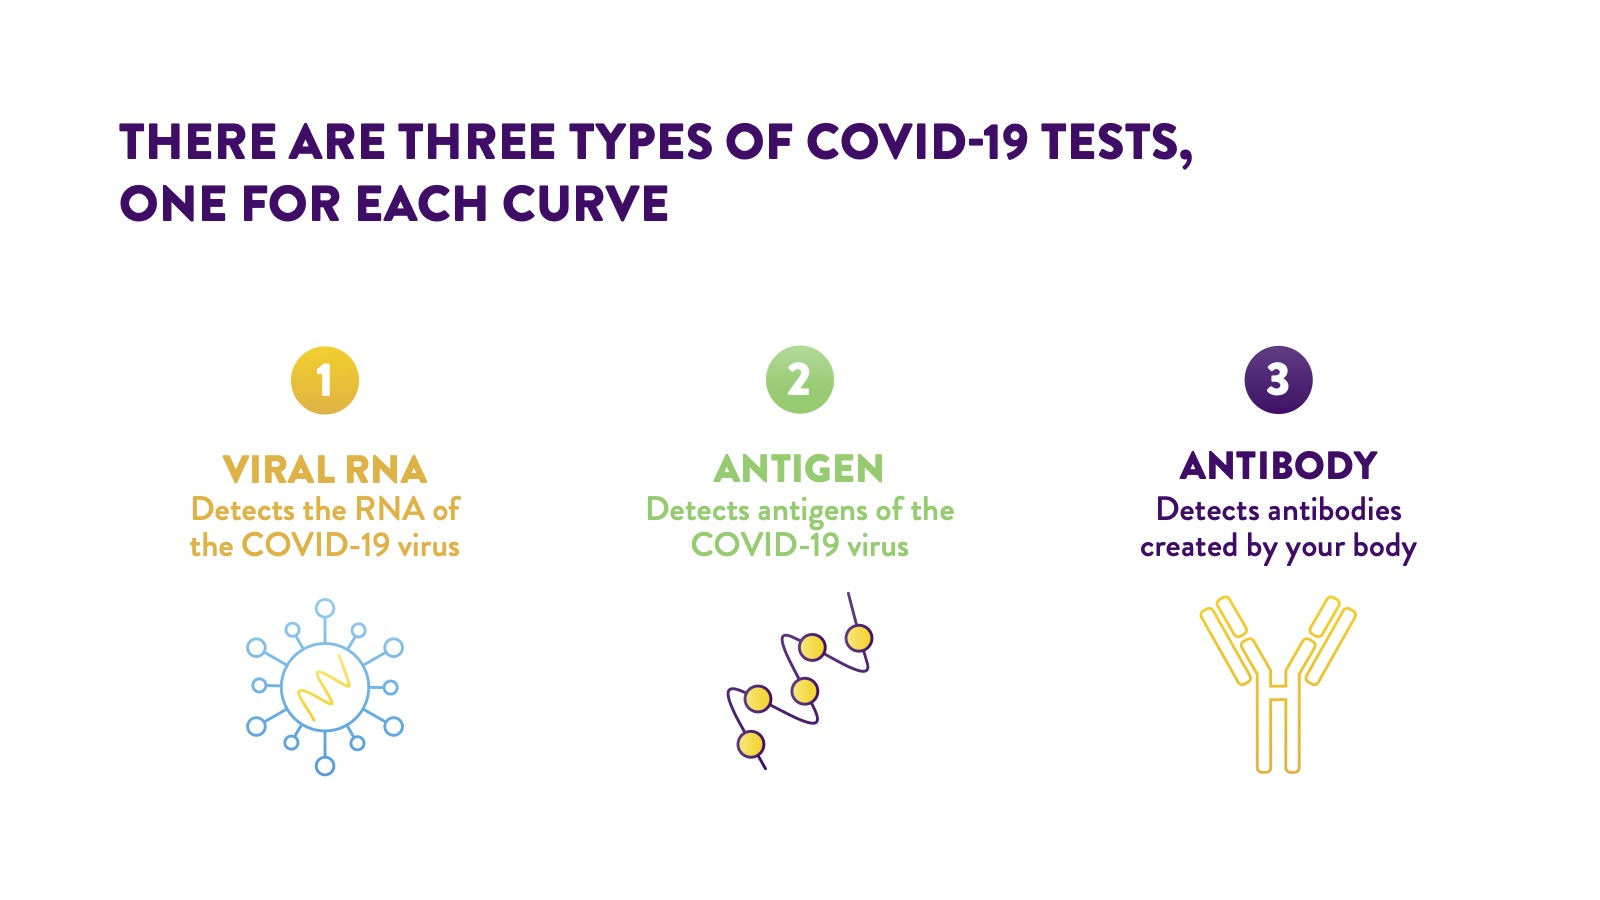 COVID-19 3 types of tests